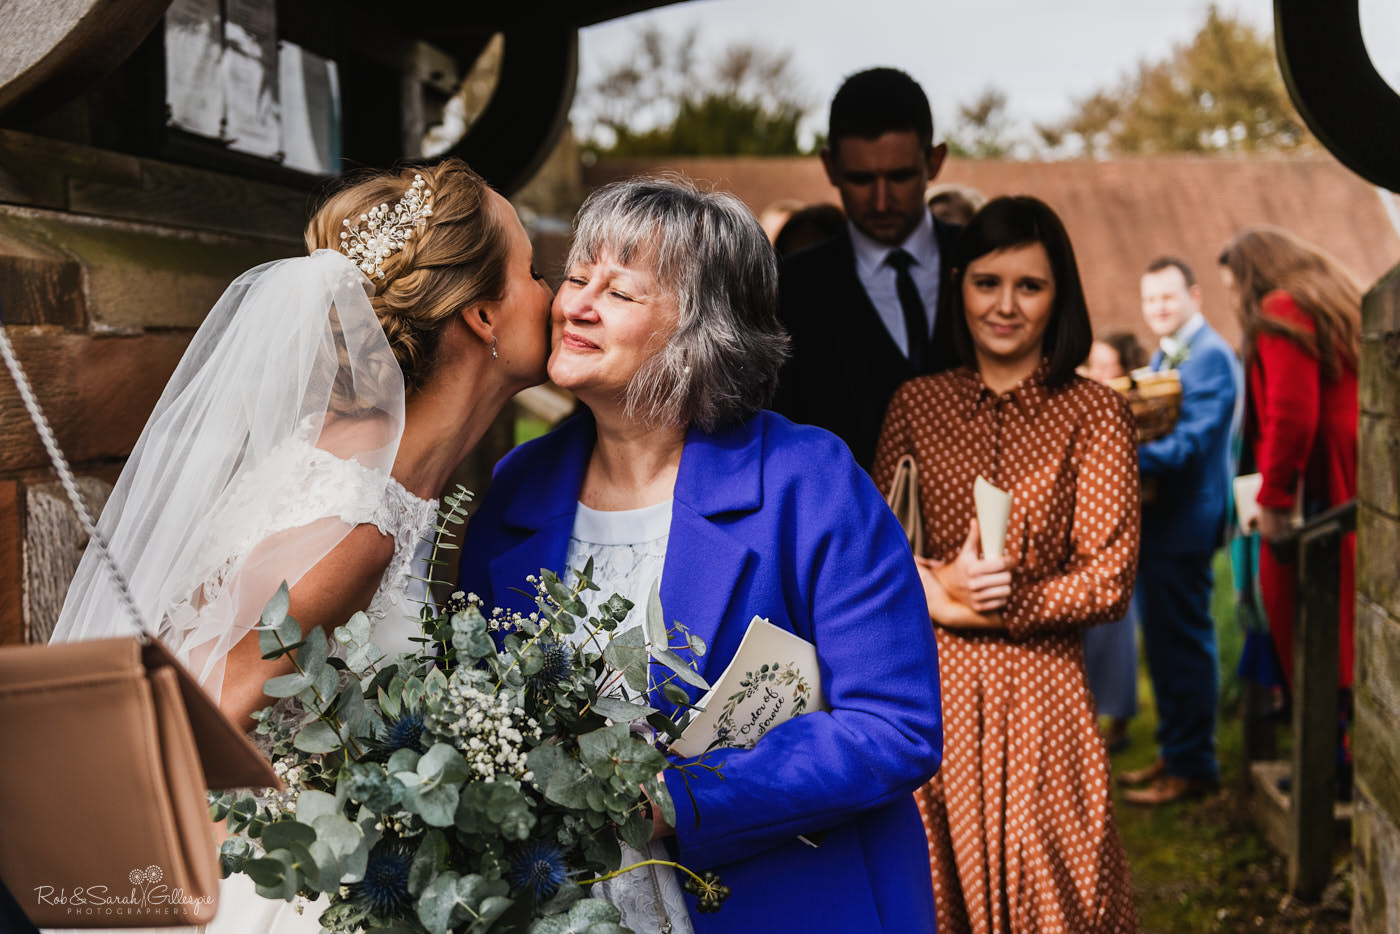 Wedding guests congratulate bride and groom at St Kenelm's church in Worcestershire